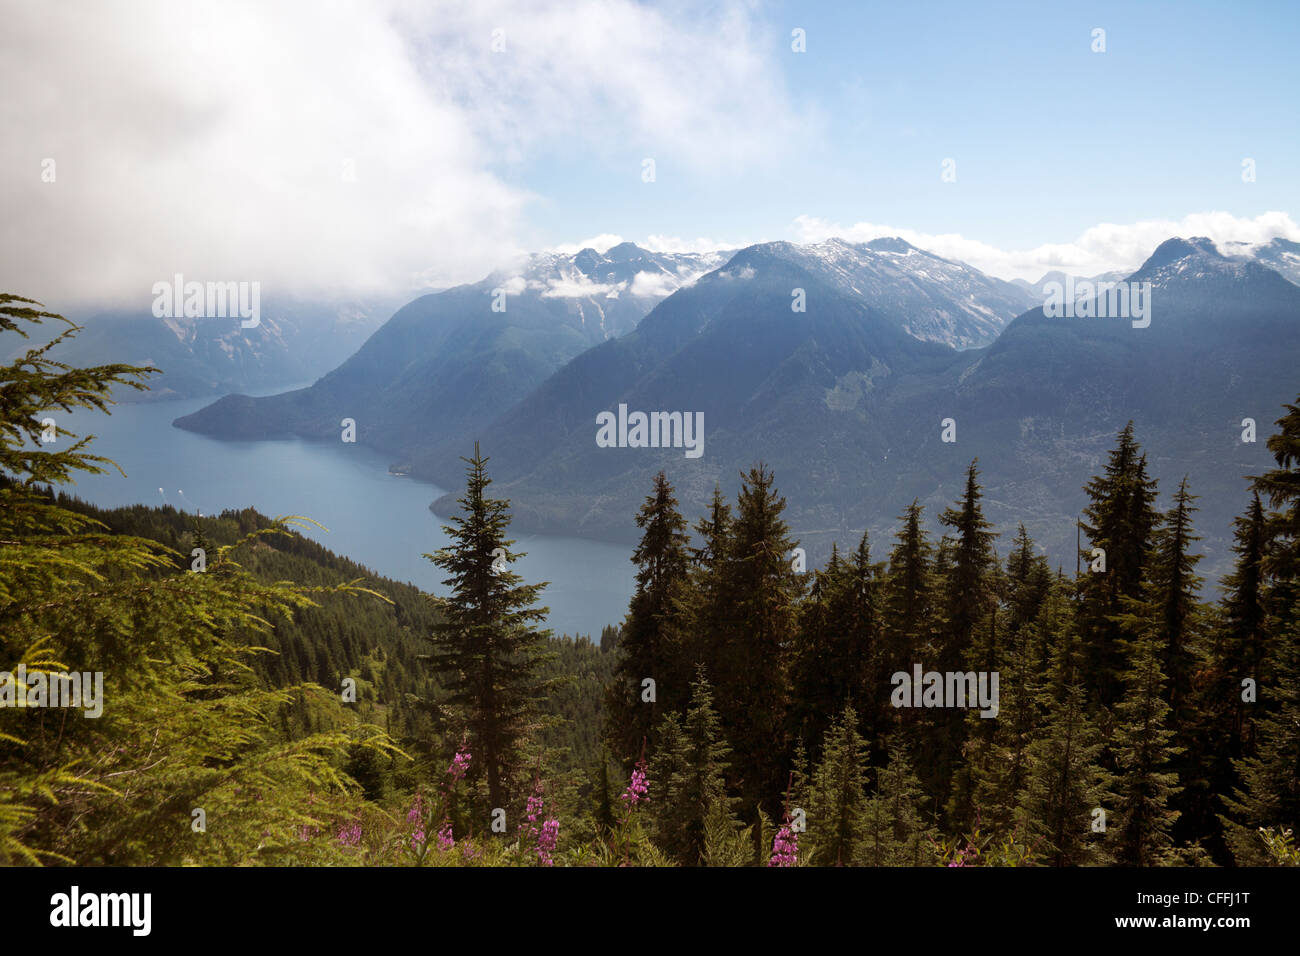 Views of the Jervis Inlet on a summer day. - Stock Image